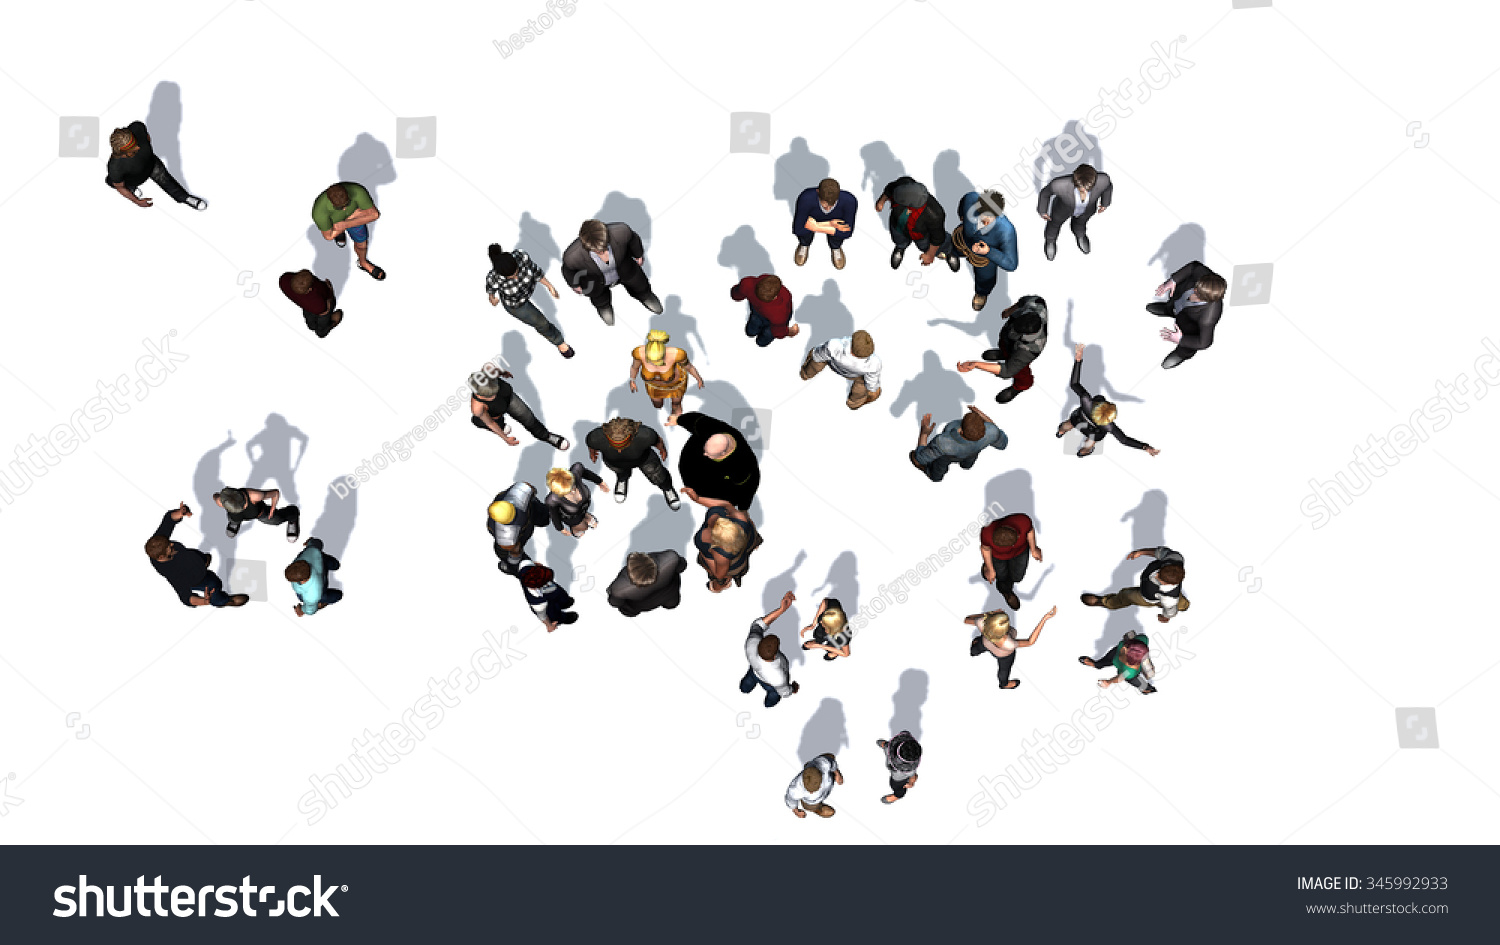 Stock Photo A Crowd Of People Top View On A White Background